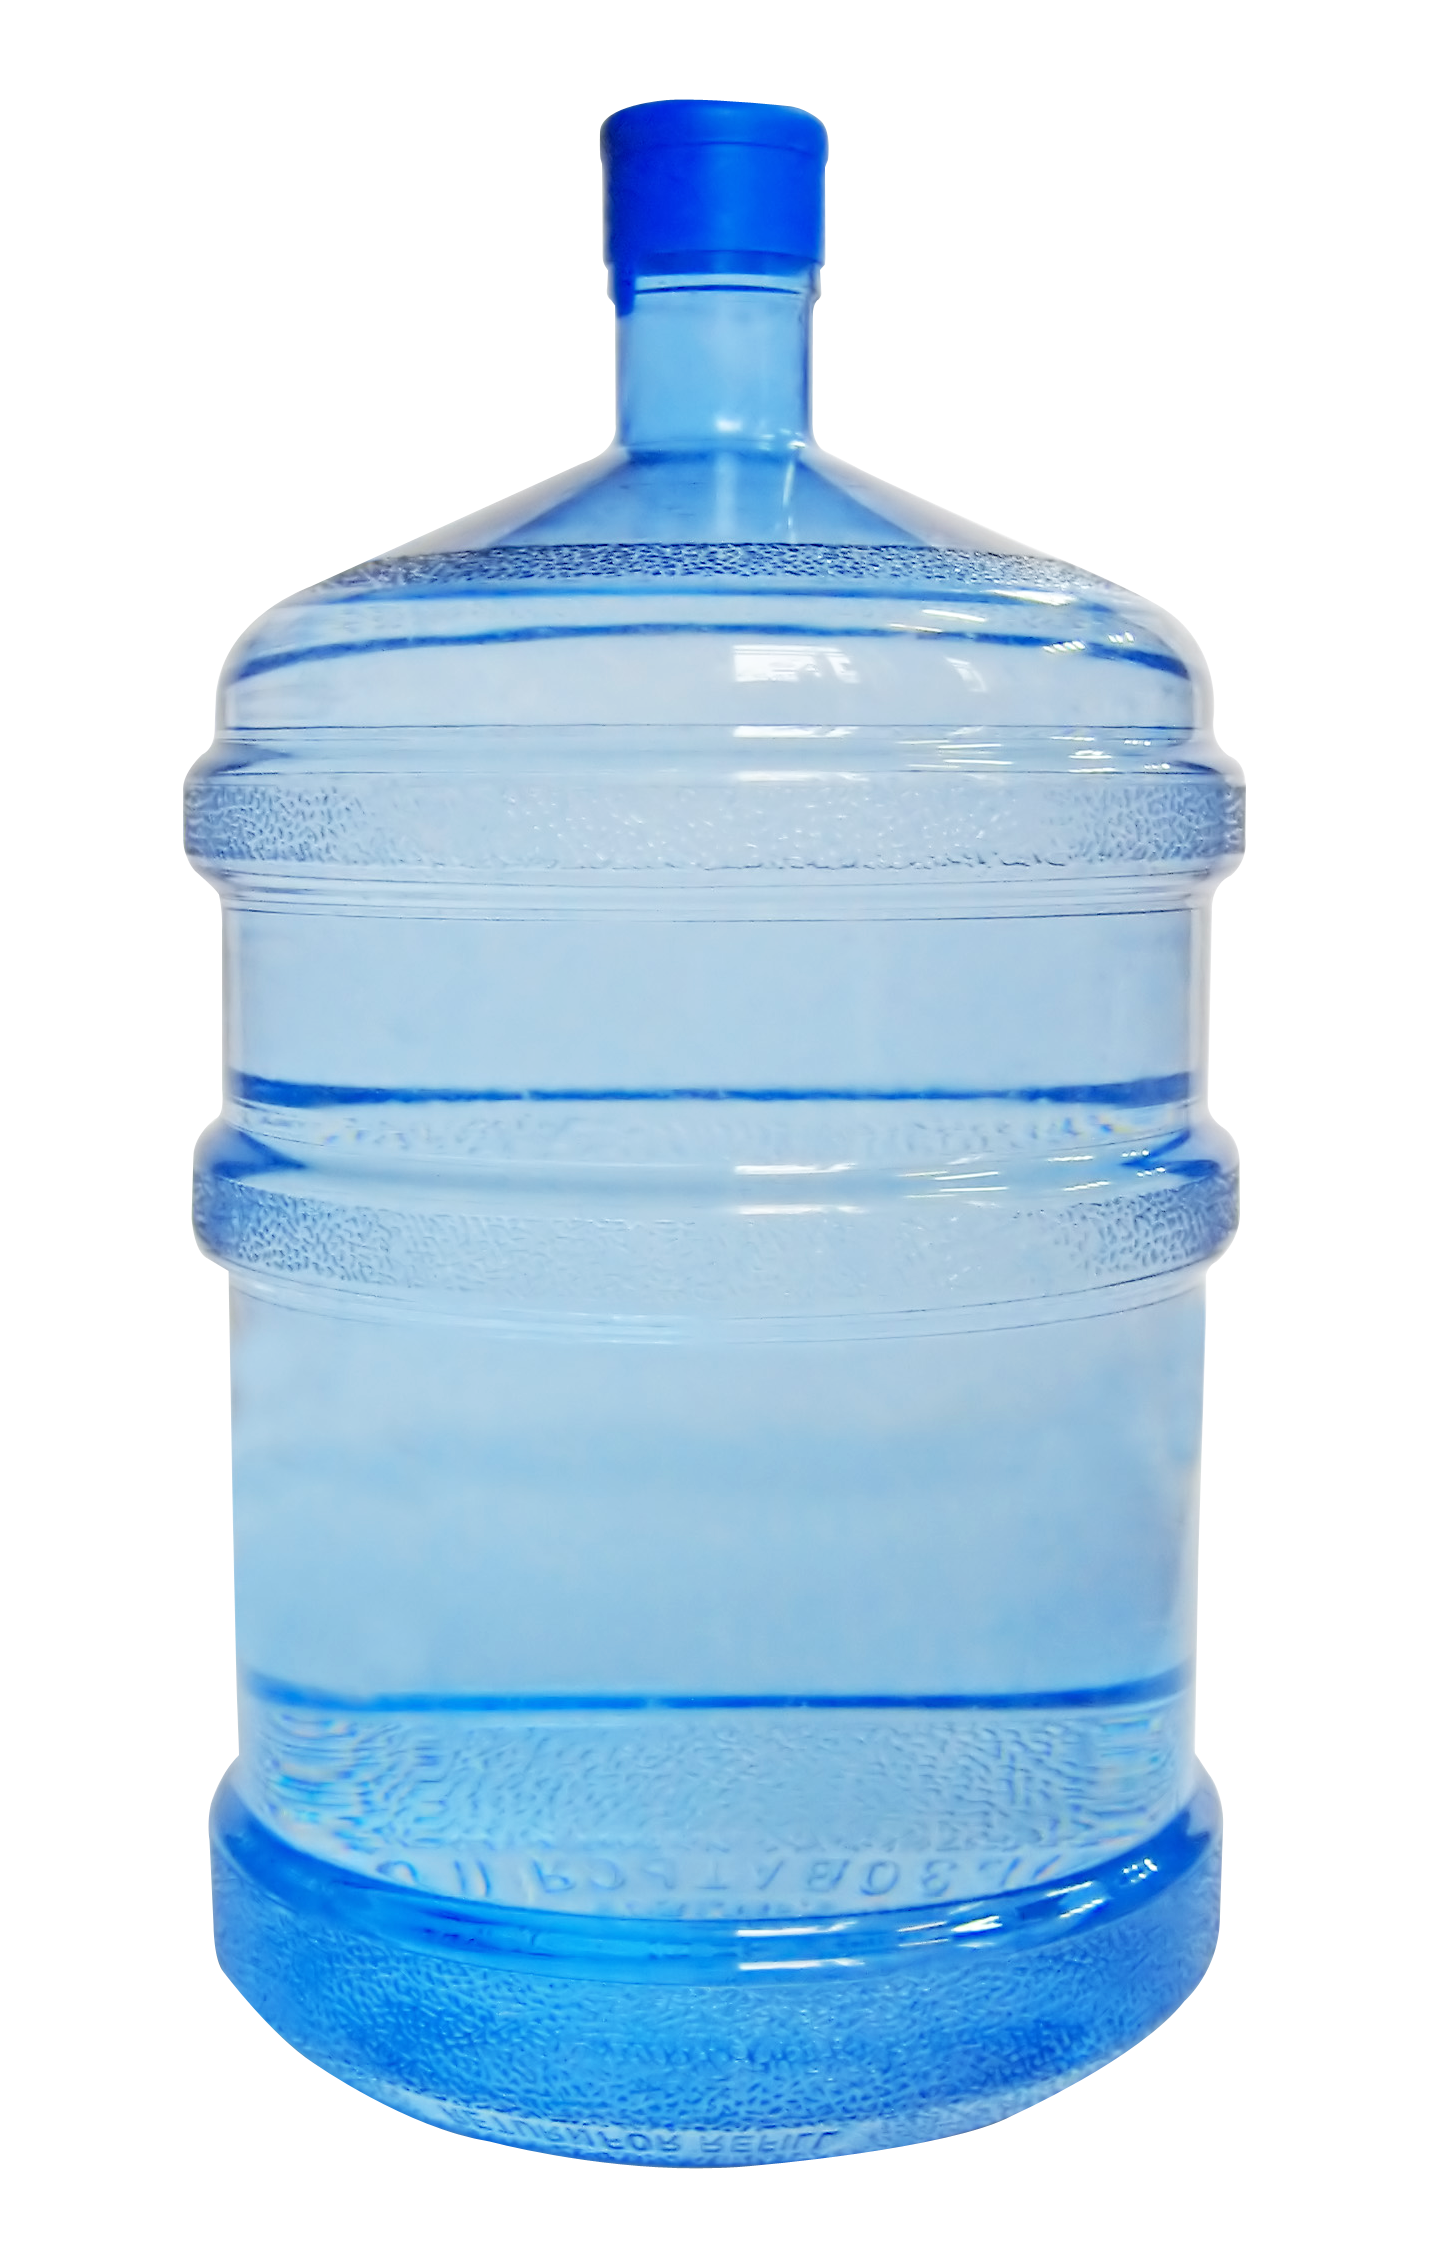 Water Bottle Cut Out Png 20636